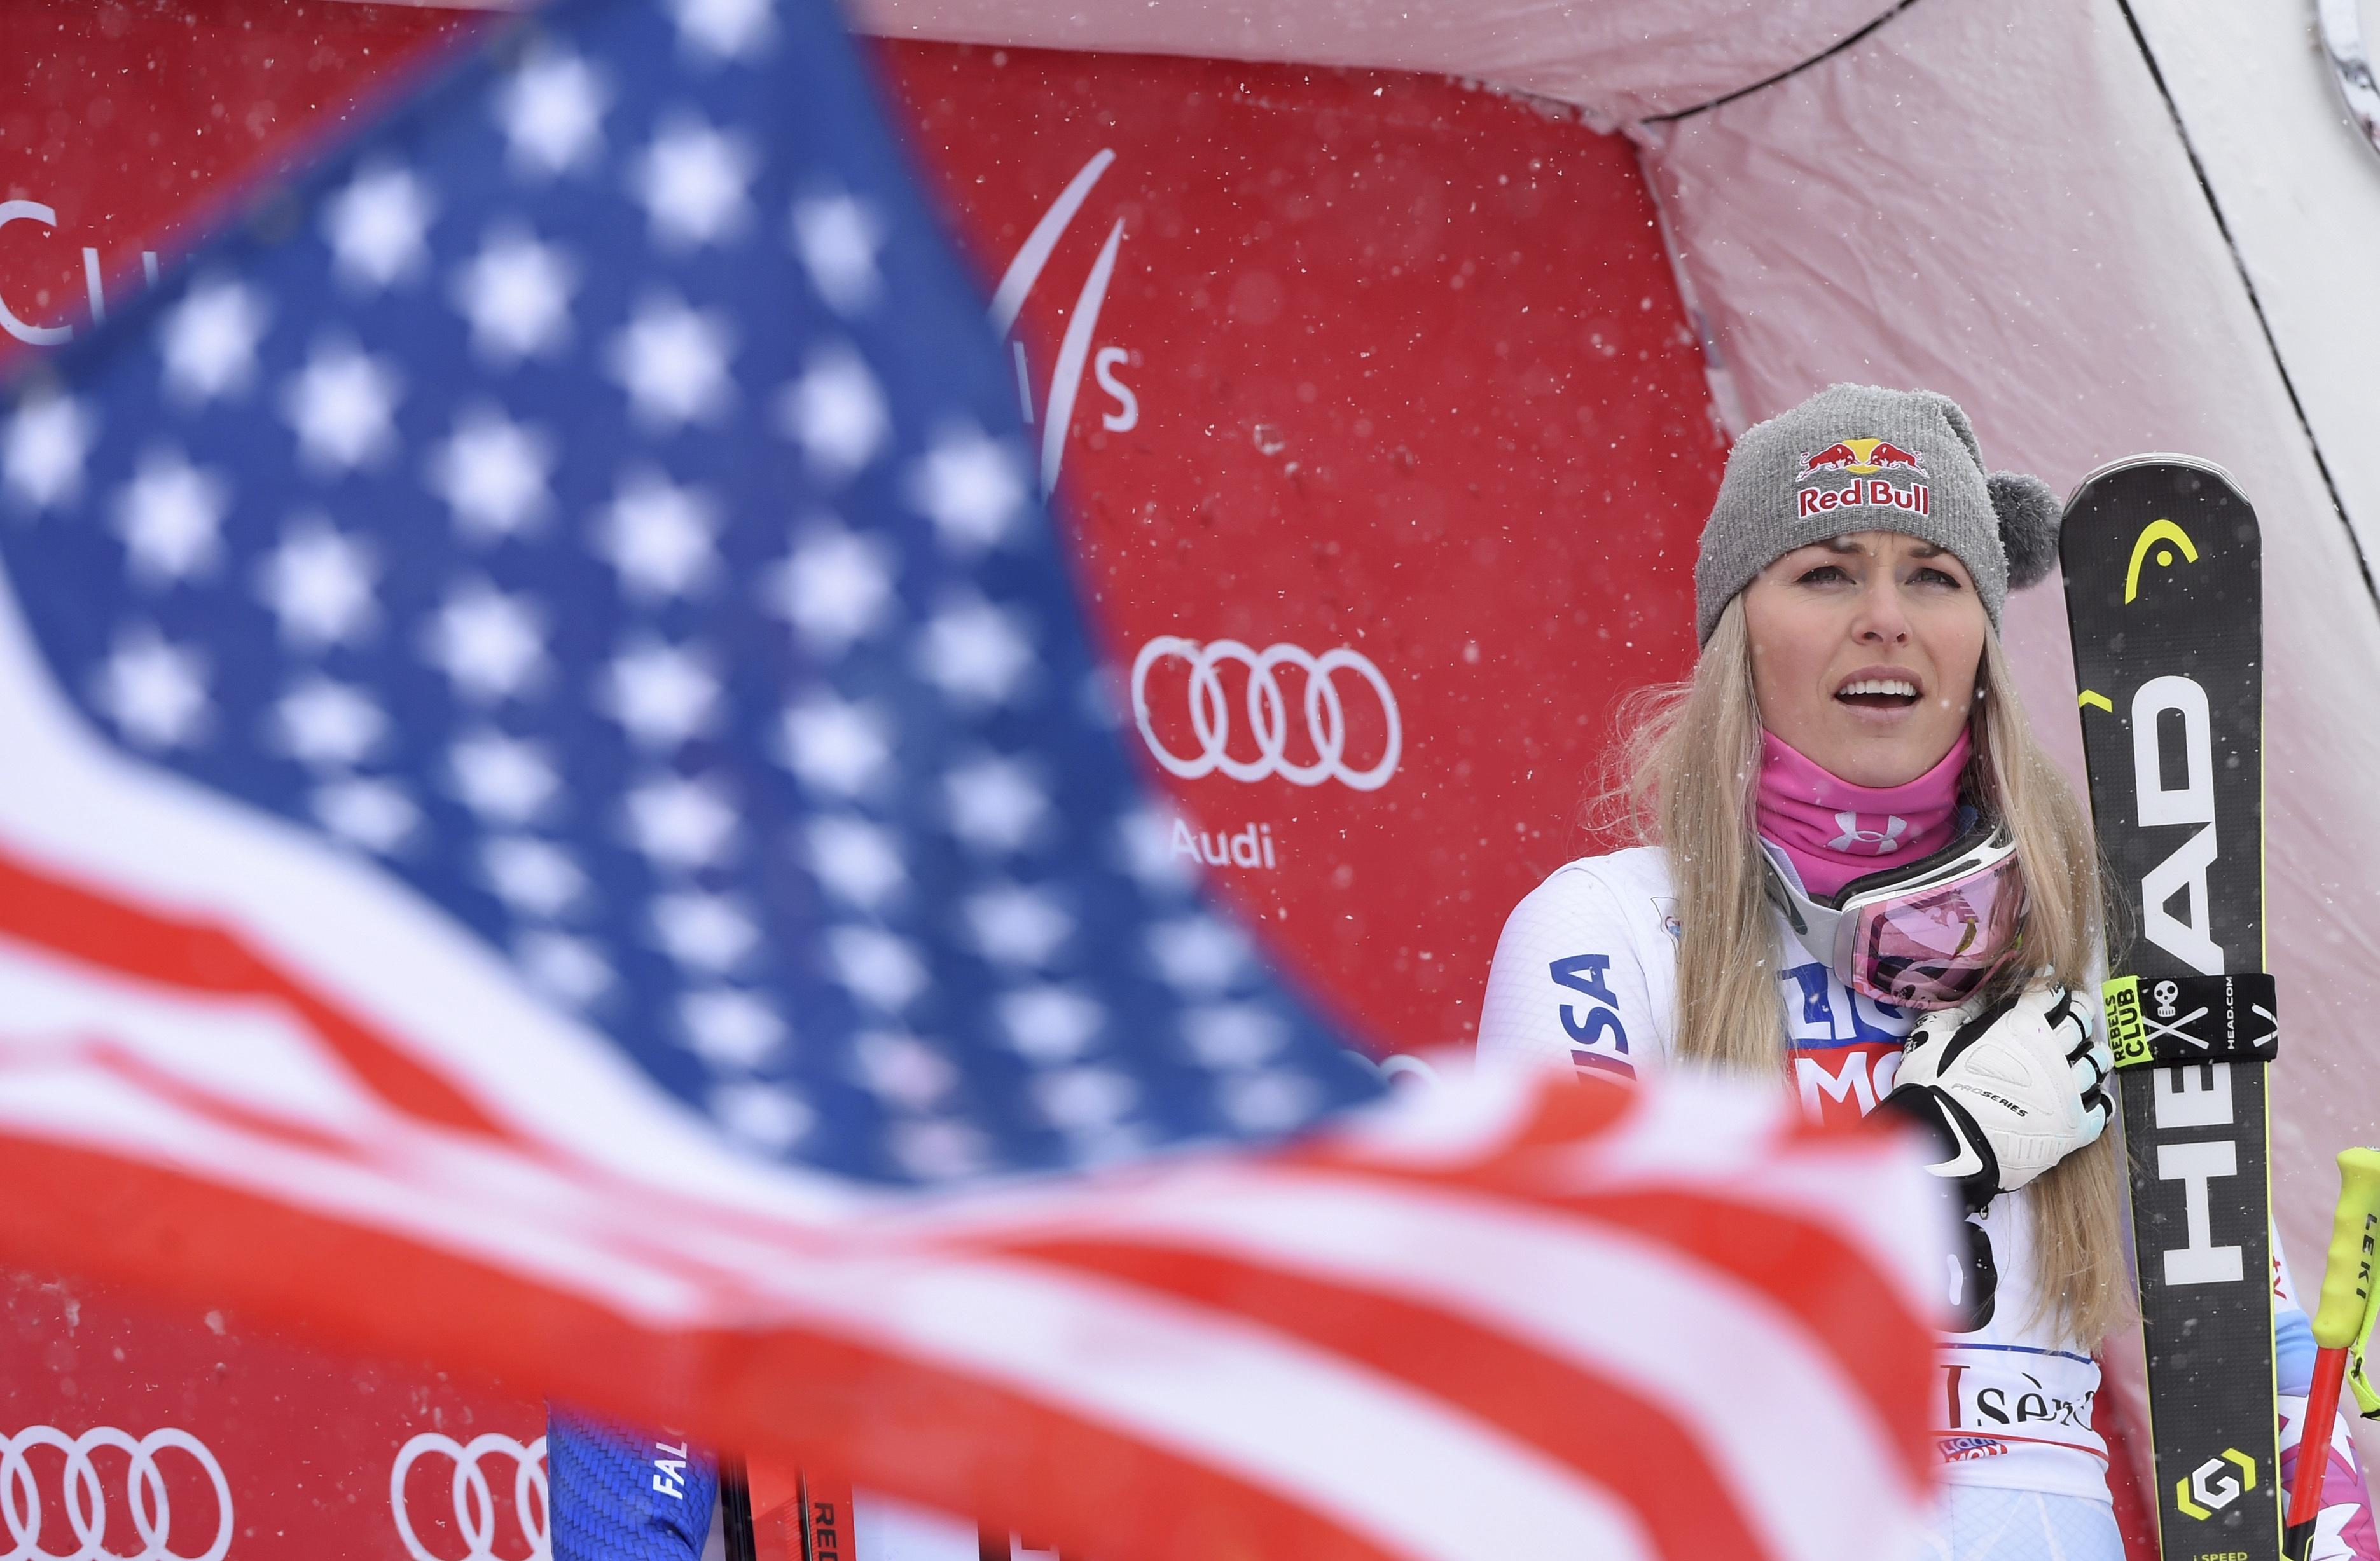 lindsey-vonn-of-the-united-states-celebrates-her-first-place-on-the-podium-of-a-women-s